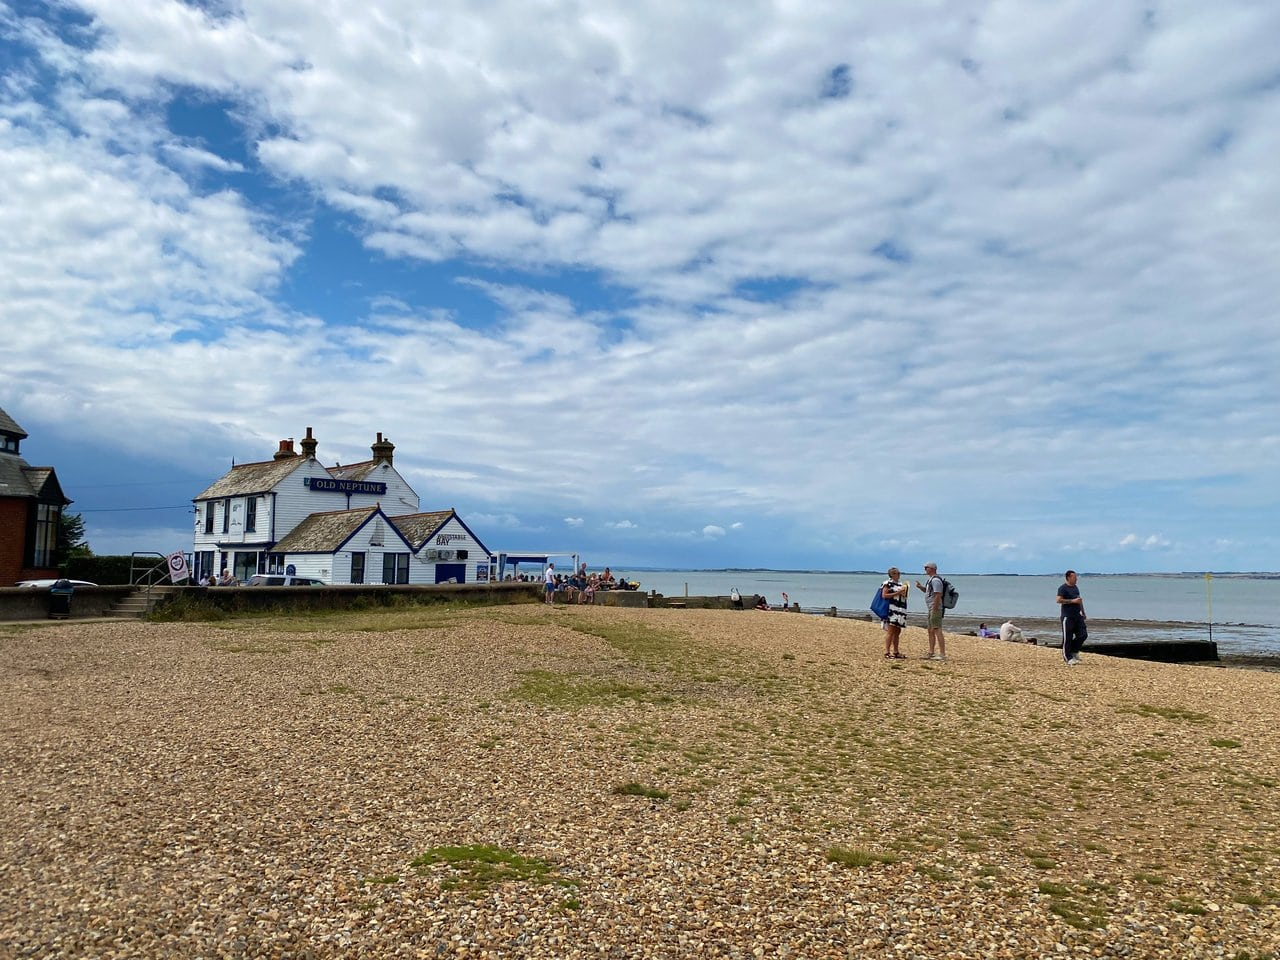 Pub on the beach in Kent, England